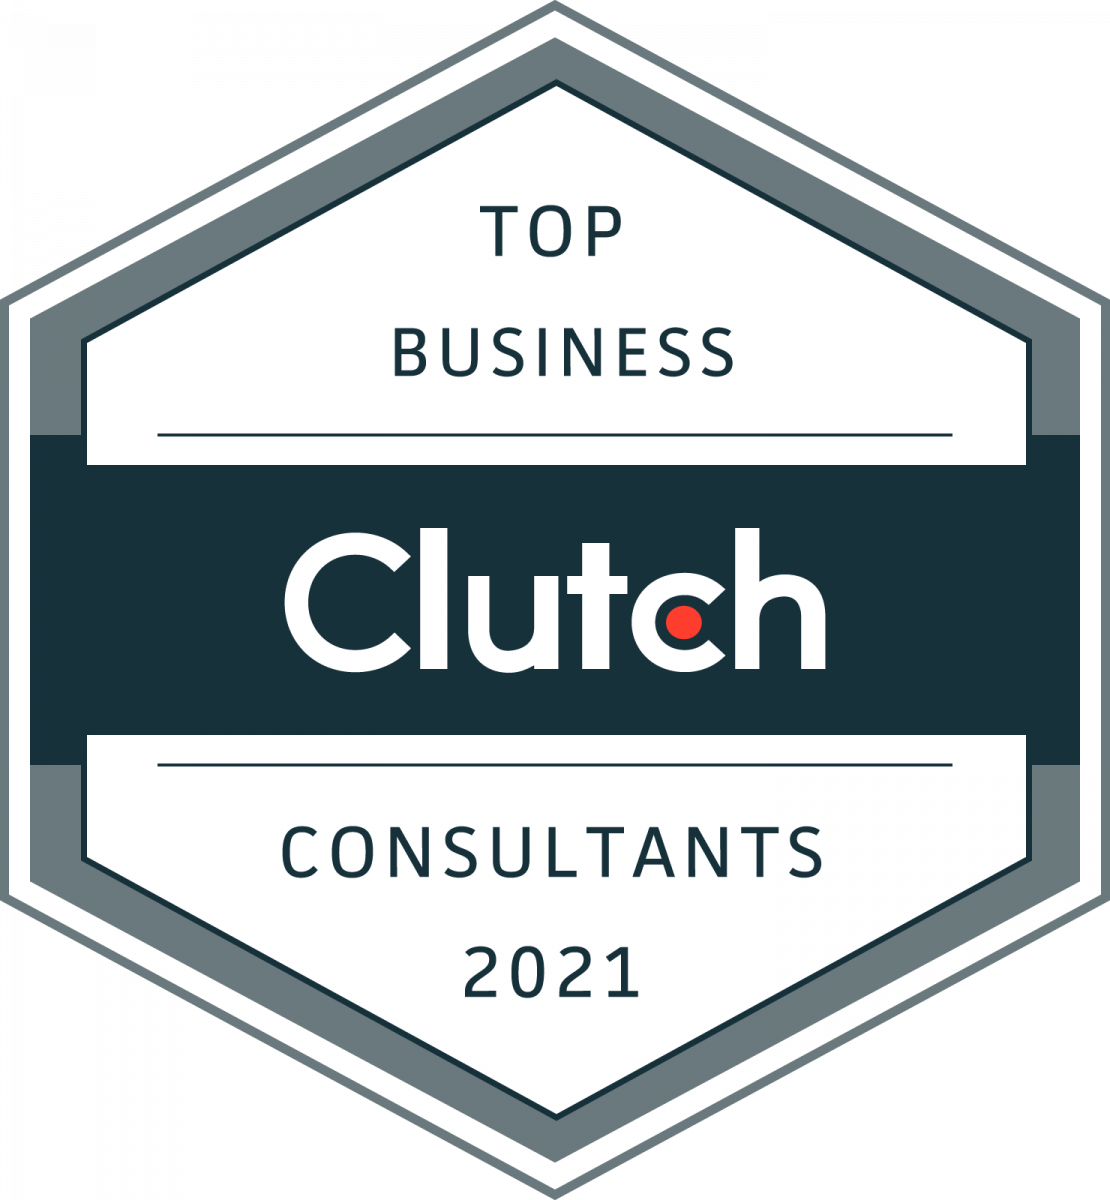 Top Consulting Firms 2021